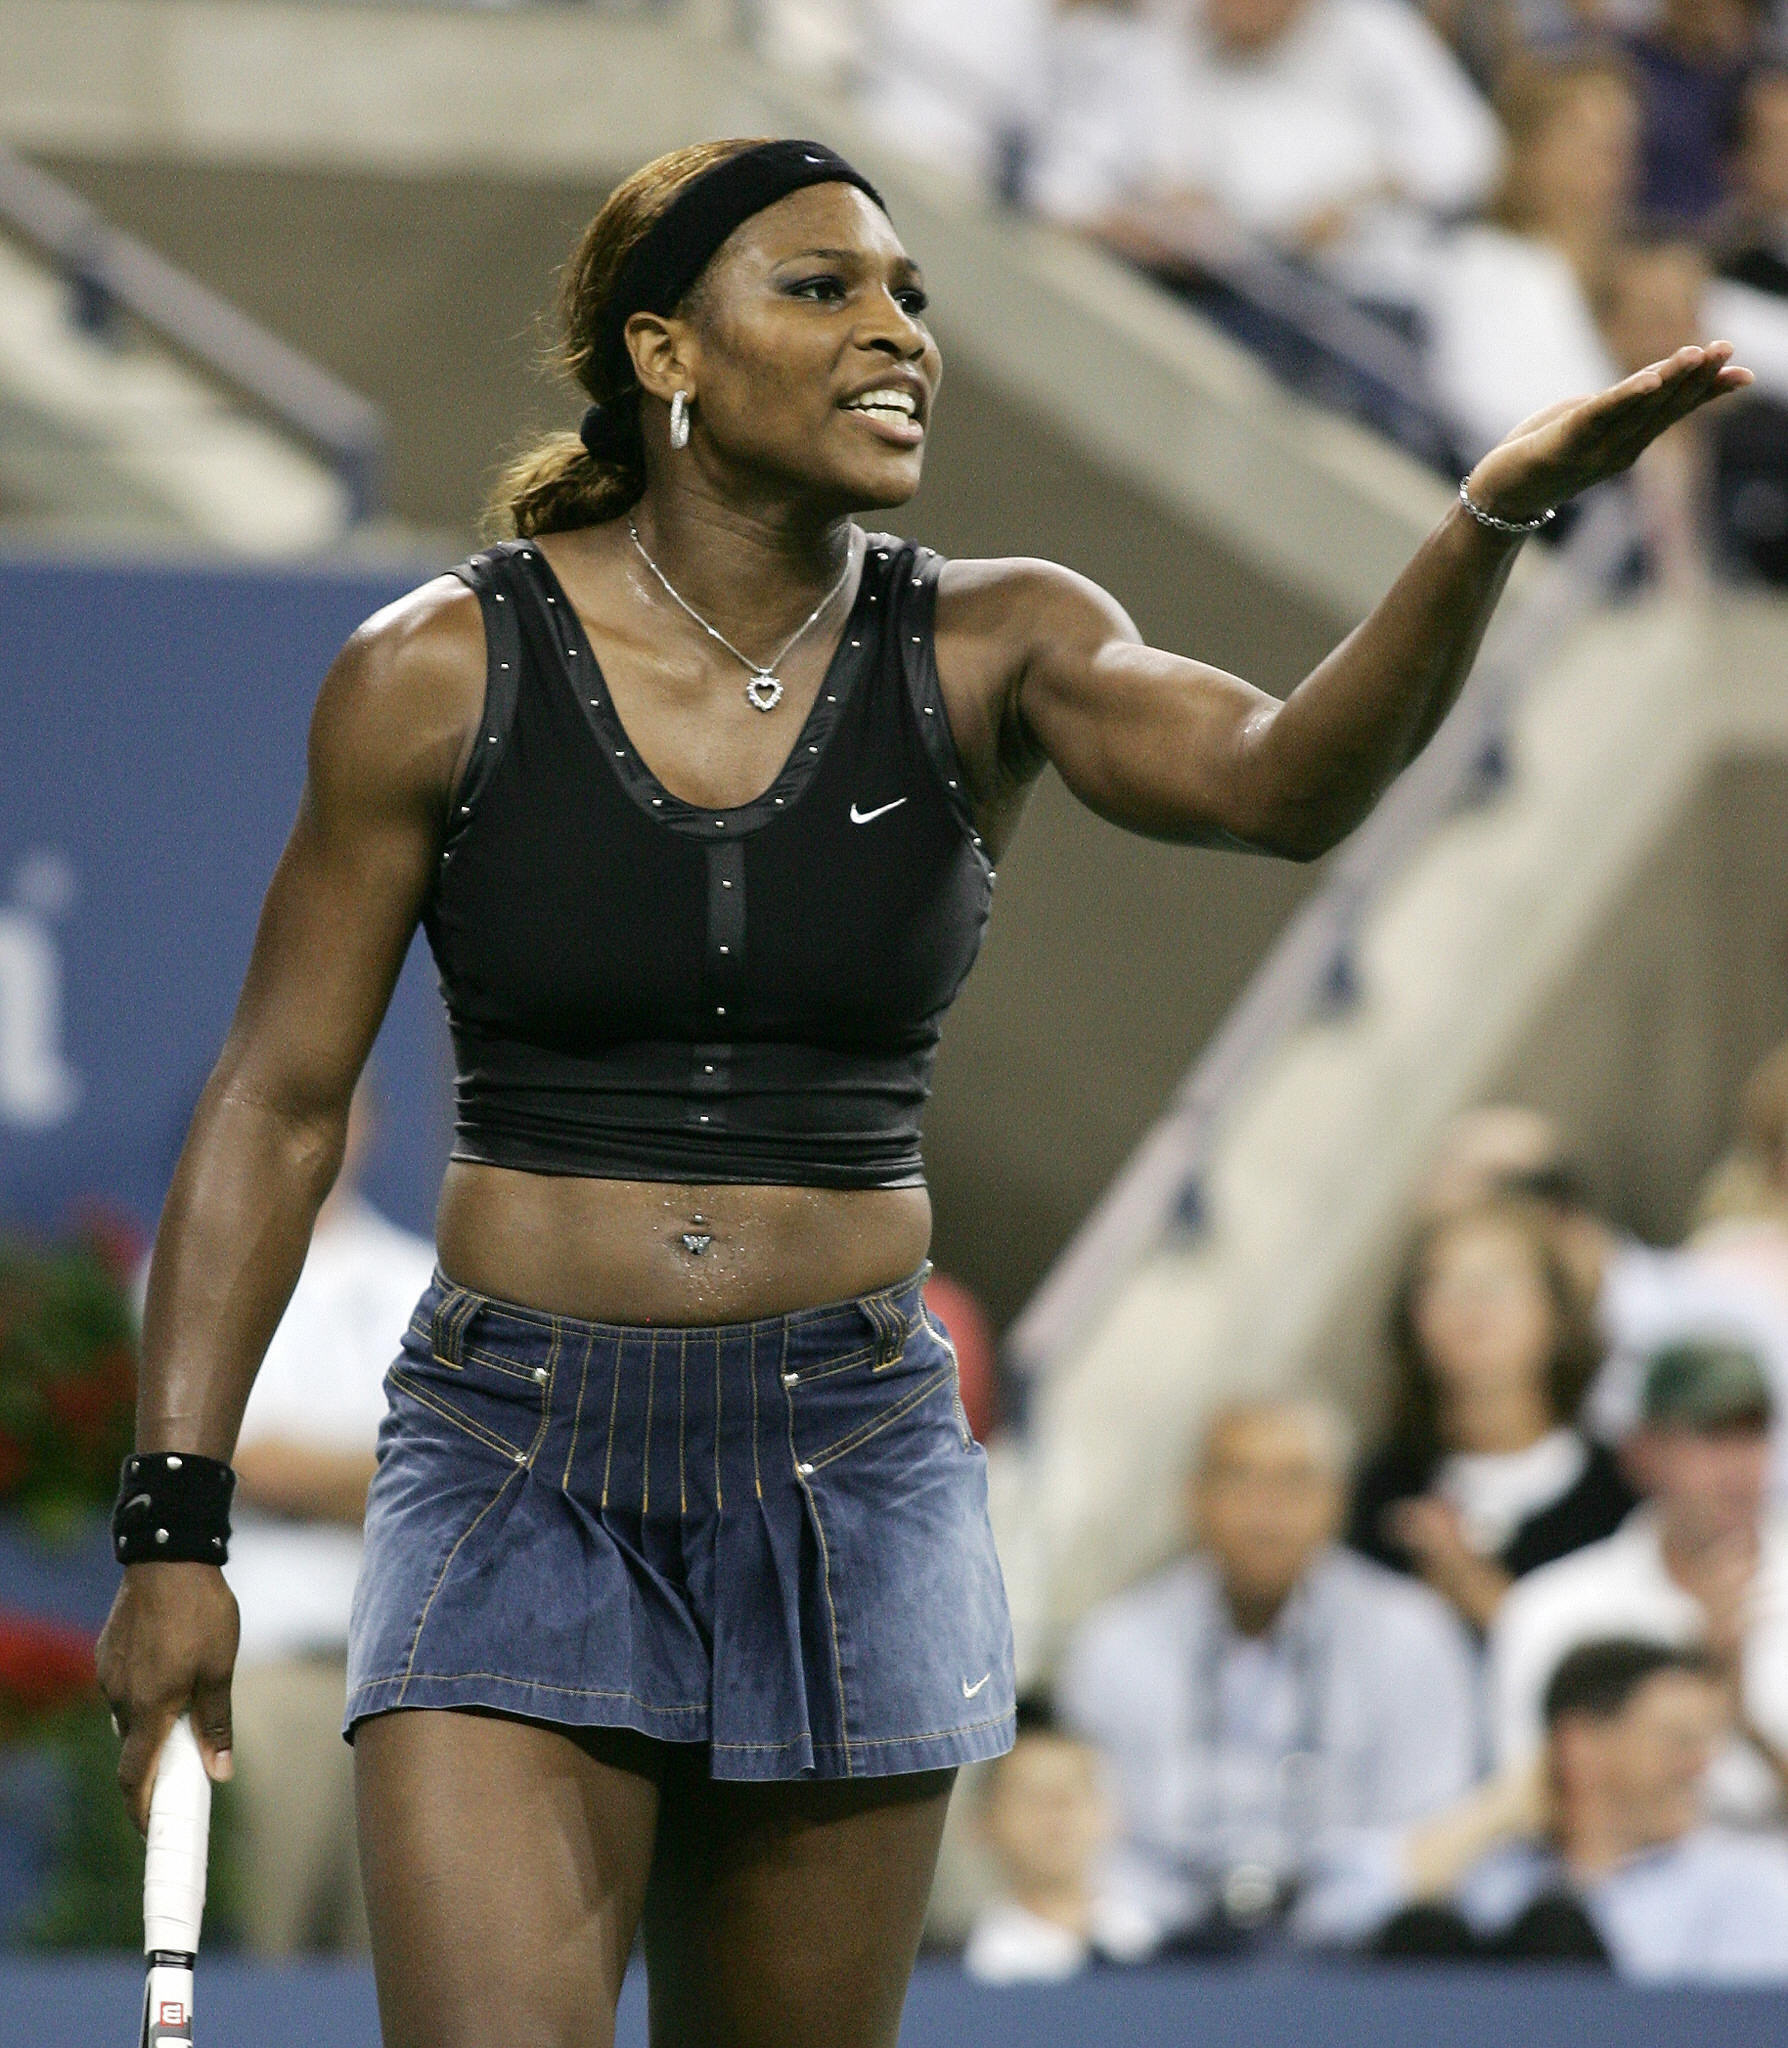 Only Serena Williams could pull off a black Nike top outlined in studs to the end of the shirt to reveal a stomach-baring midriff (check out those rockin' abs) and a denim skirt for the 2004 US Open.